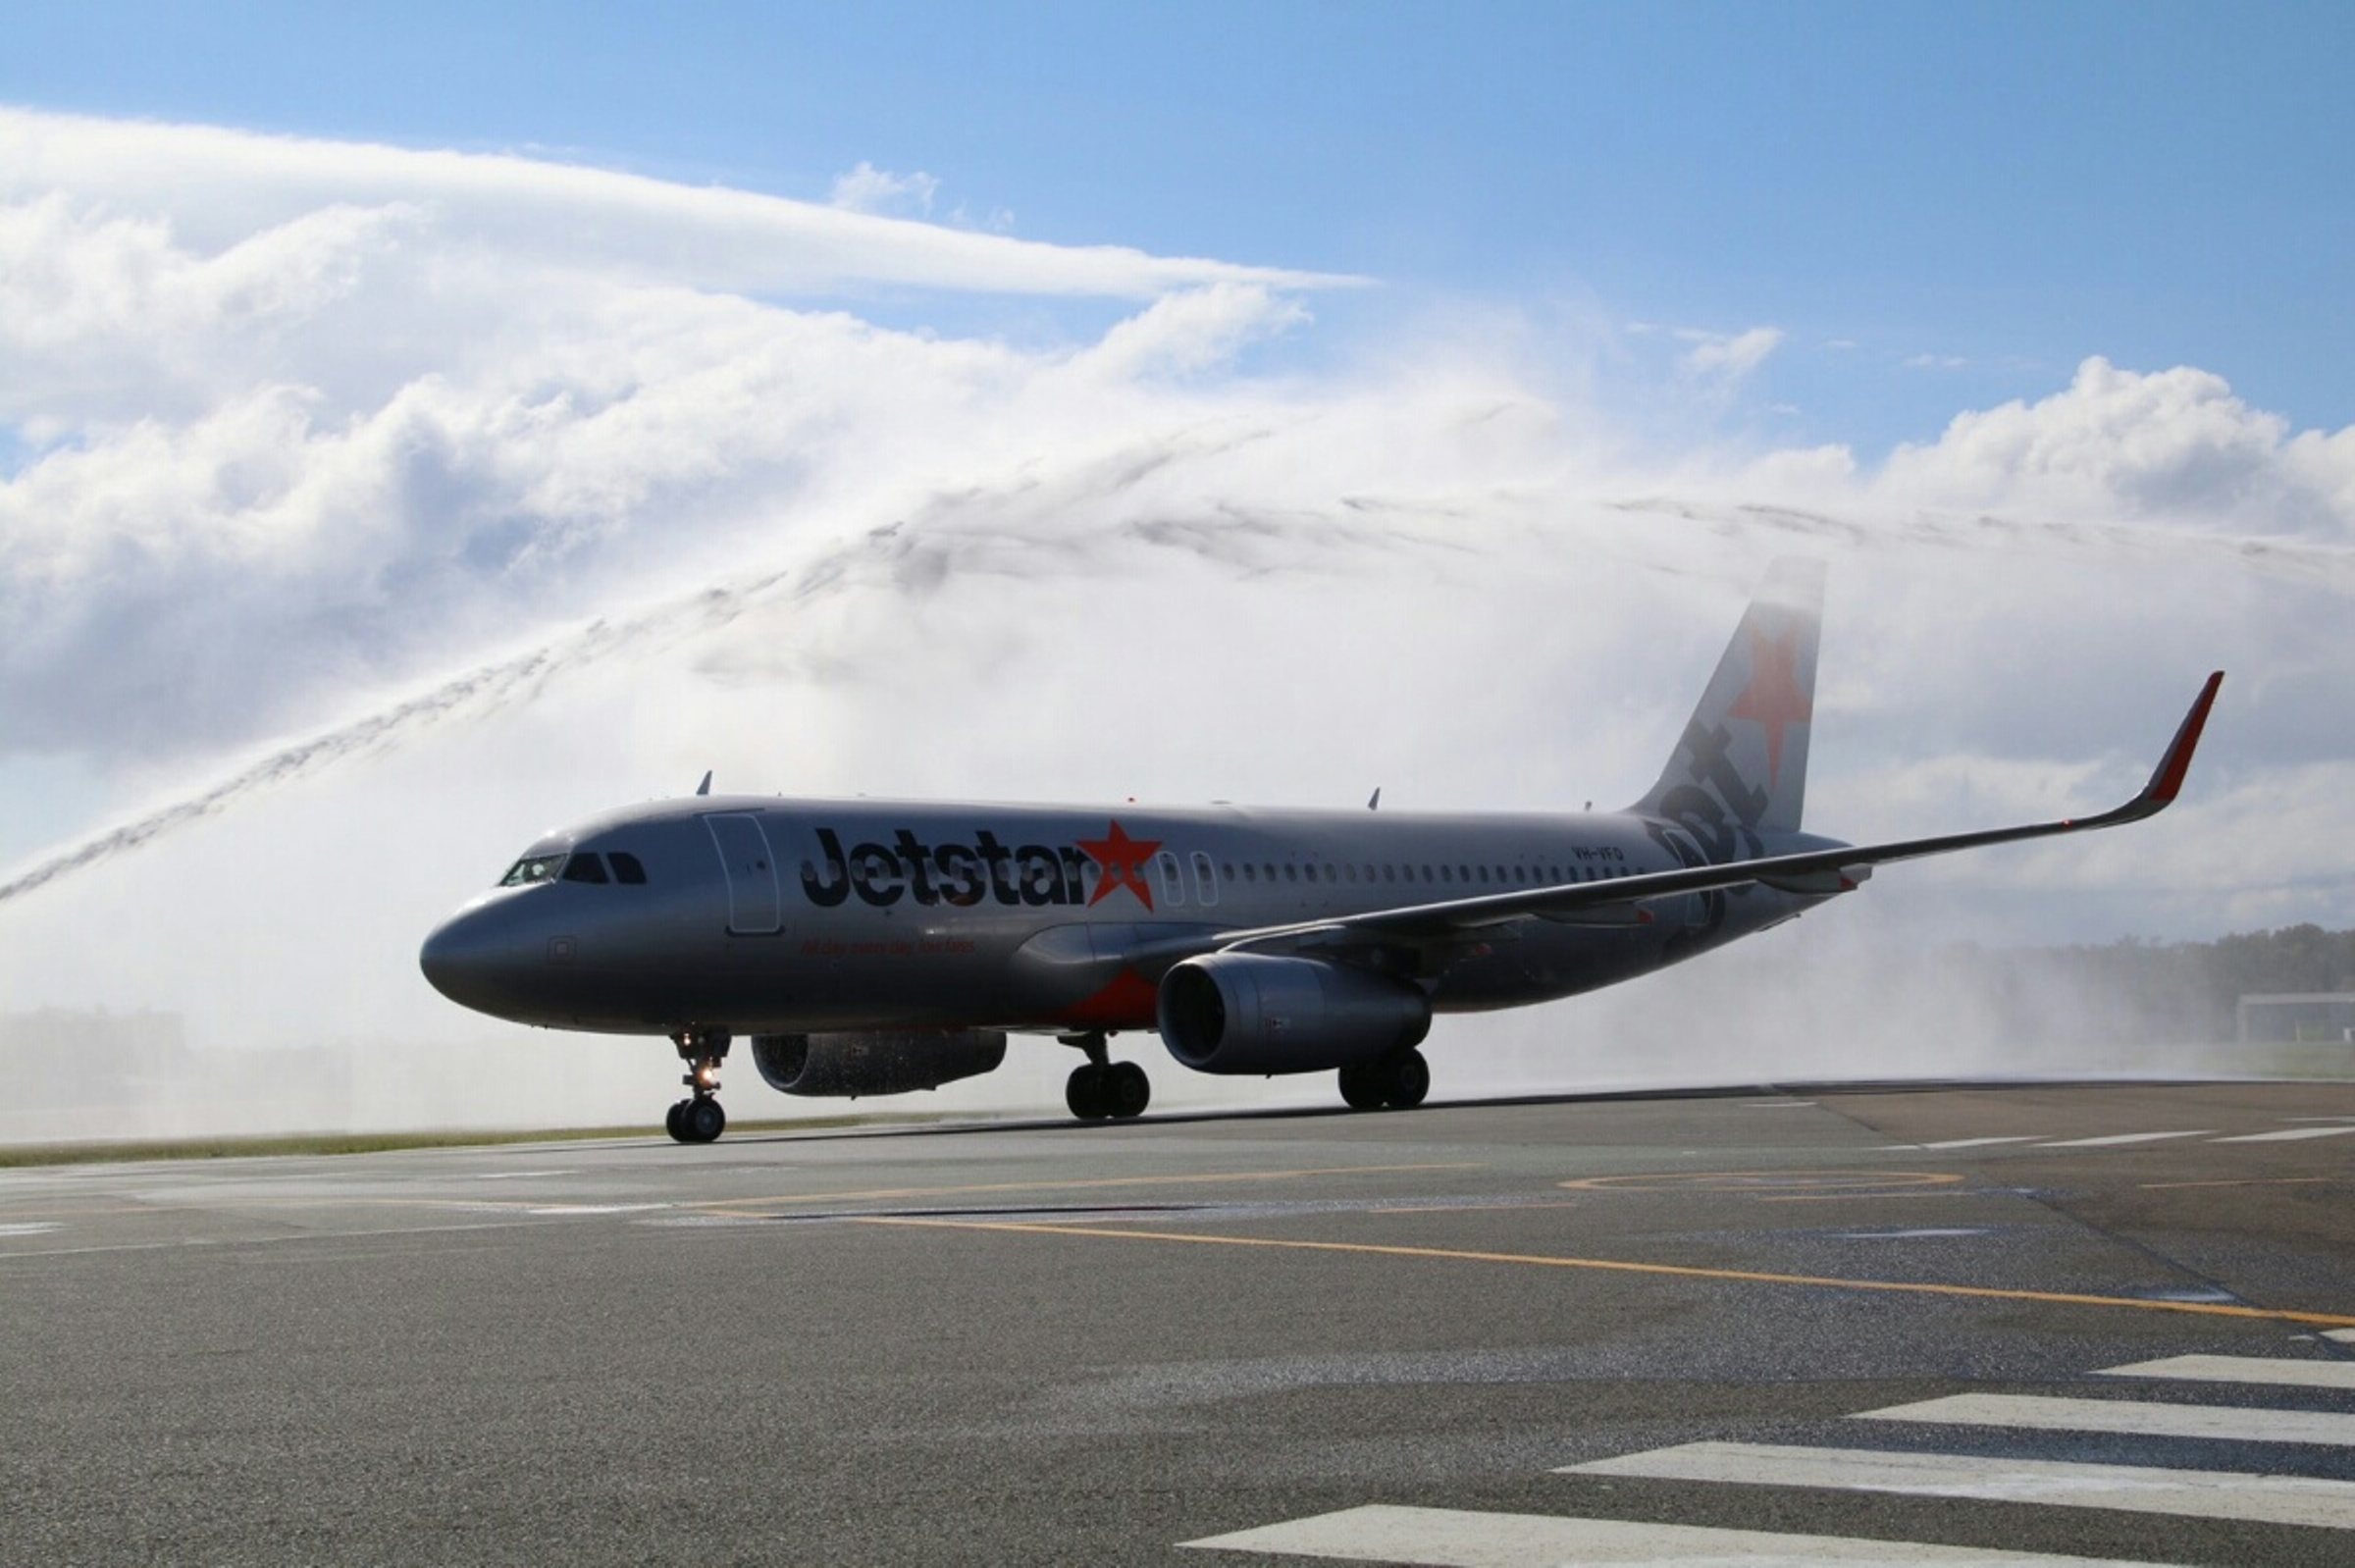 jetstar flights - photo #23